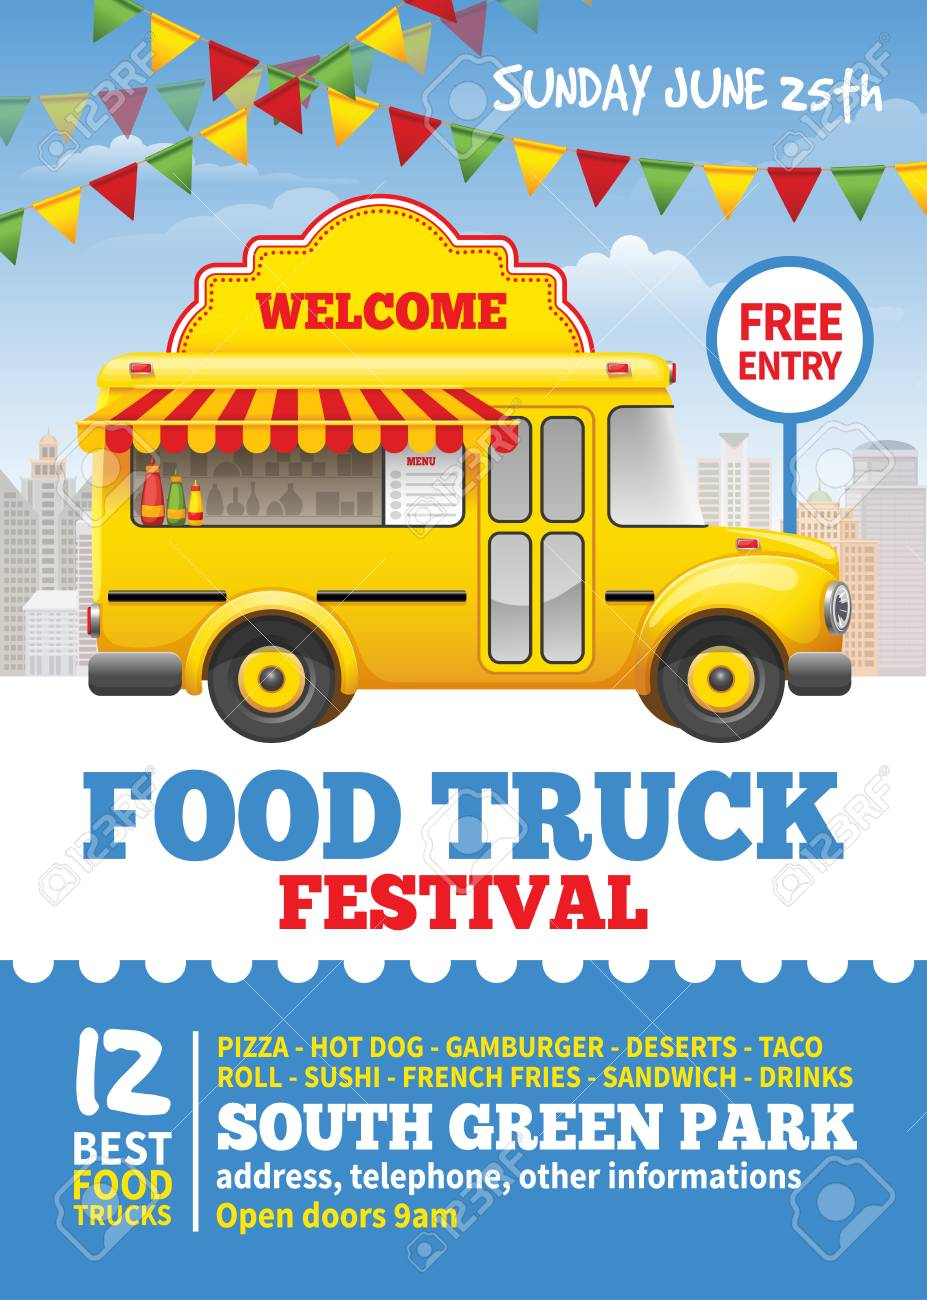 Food truck festival poster design template. Cute vintage food truck on blue sky background. Vector illustration. For holiday flyers and banners design. - 75182777